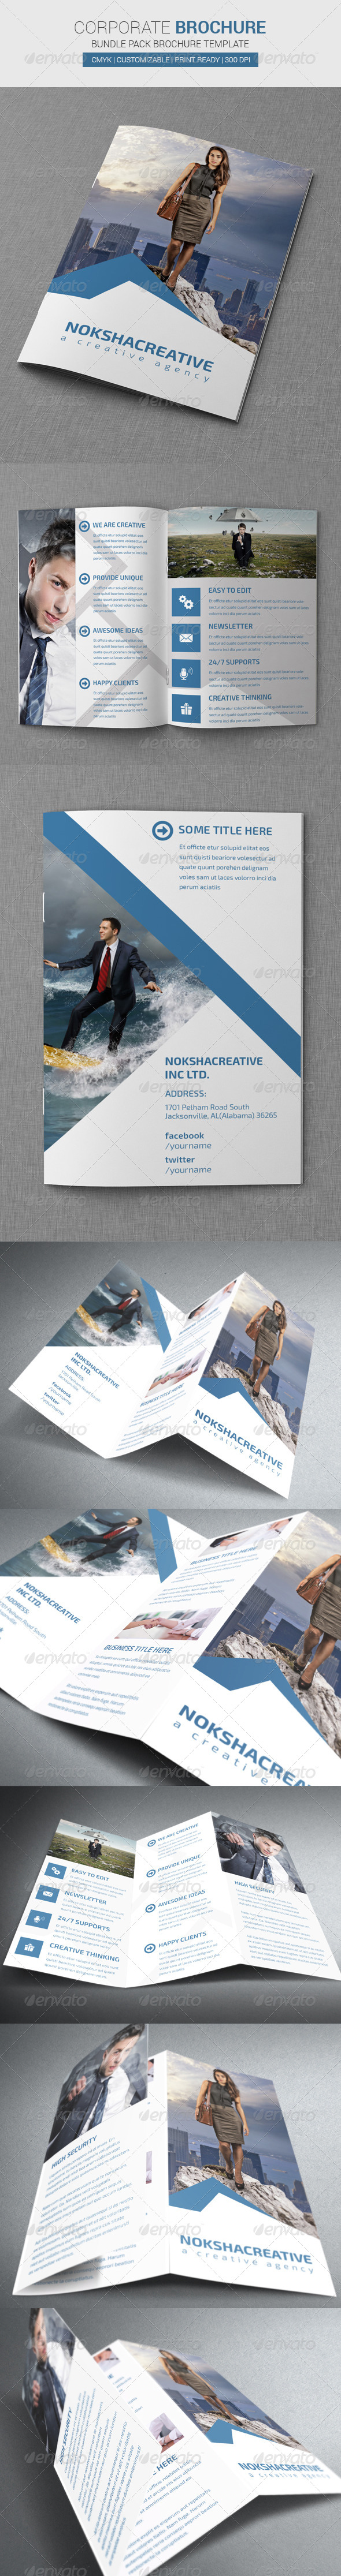 Corporate Brochure Bundle Pack - Corporate Brochures